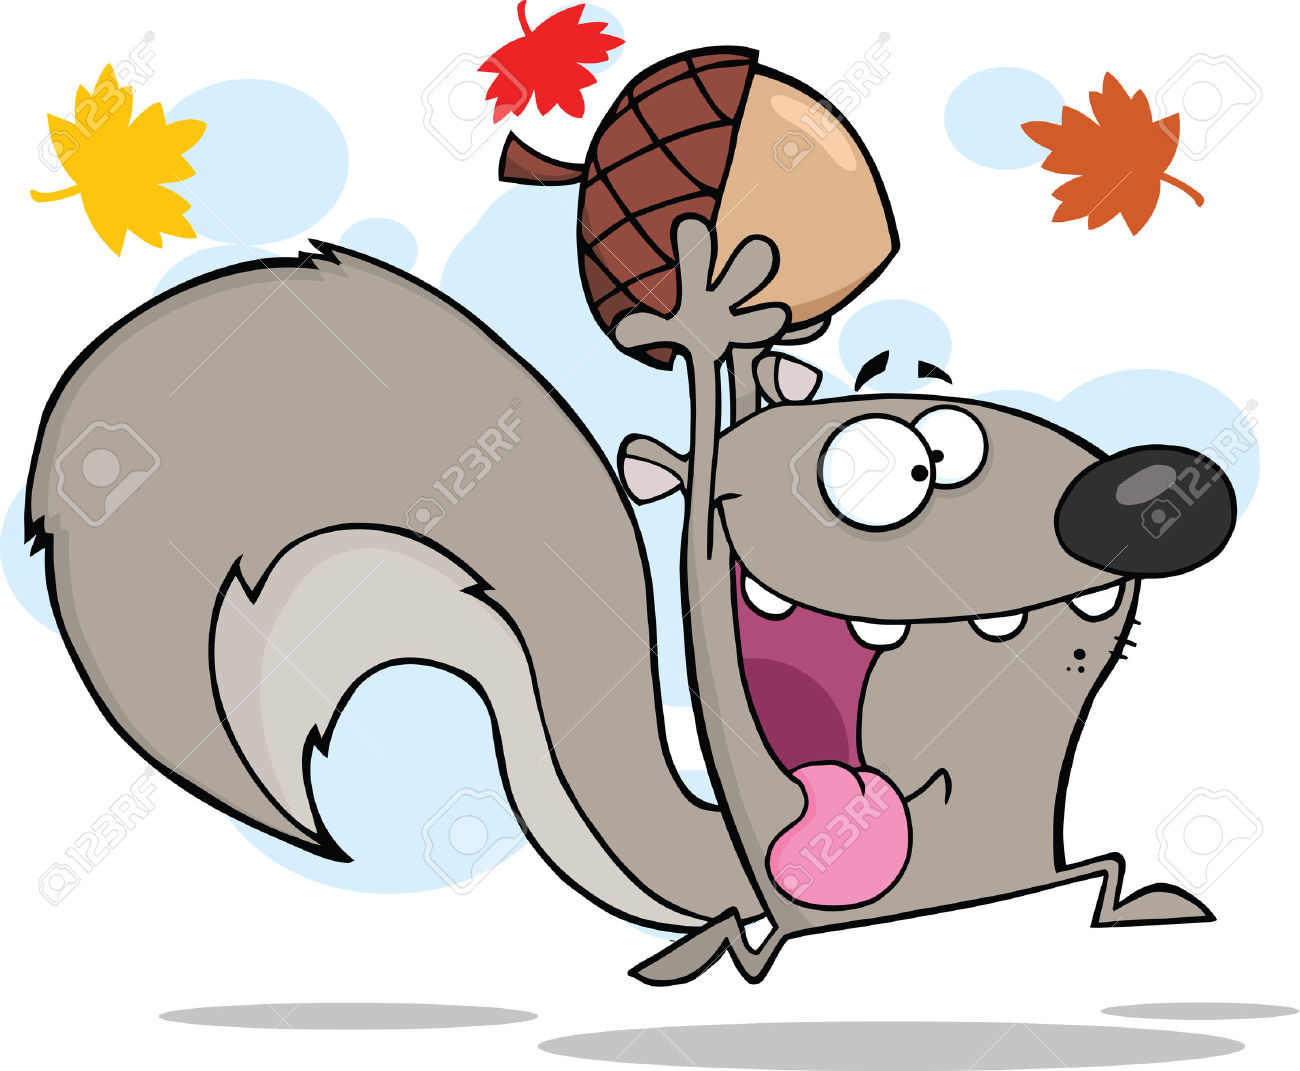 Gray Squirrel clipart #5, Download drawings